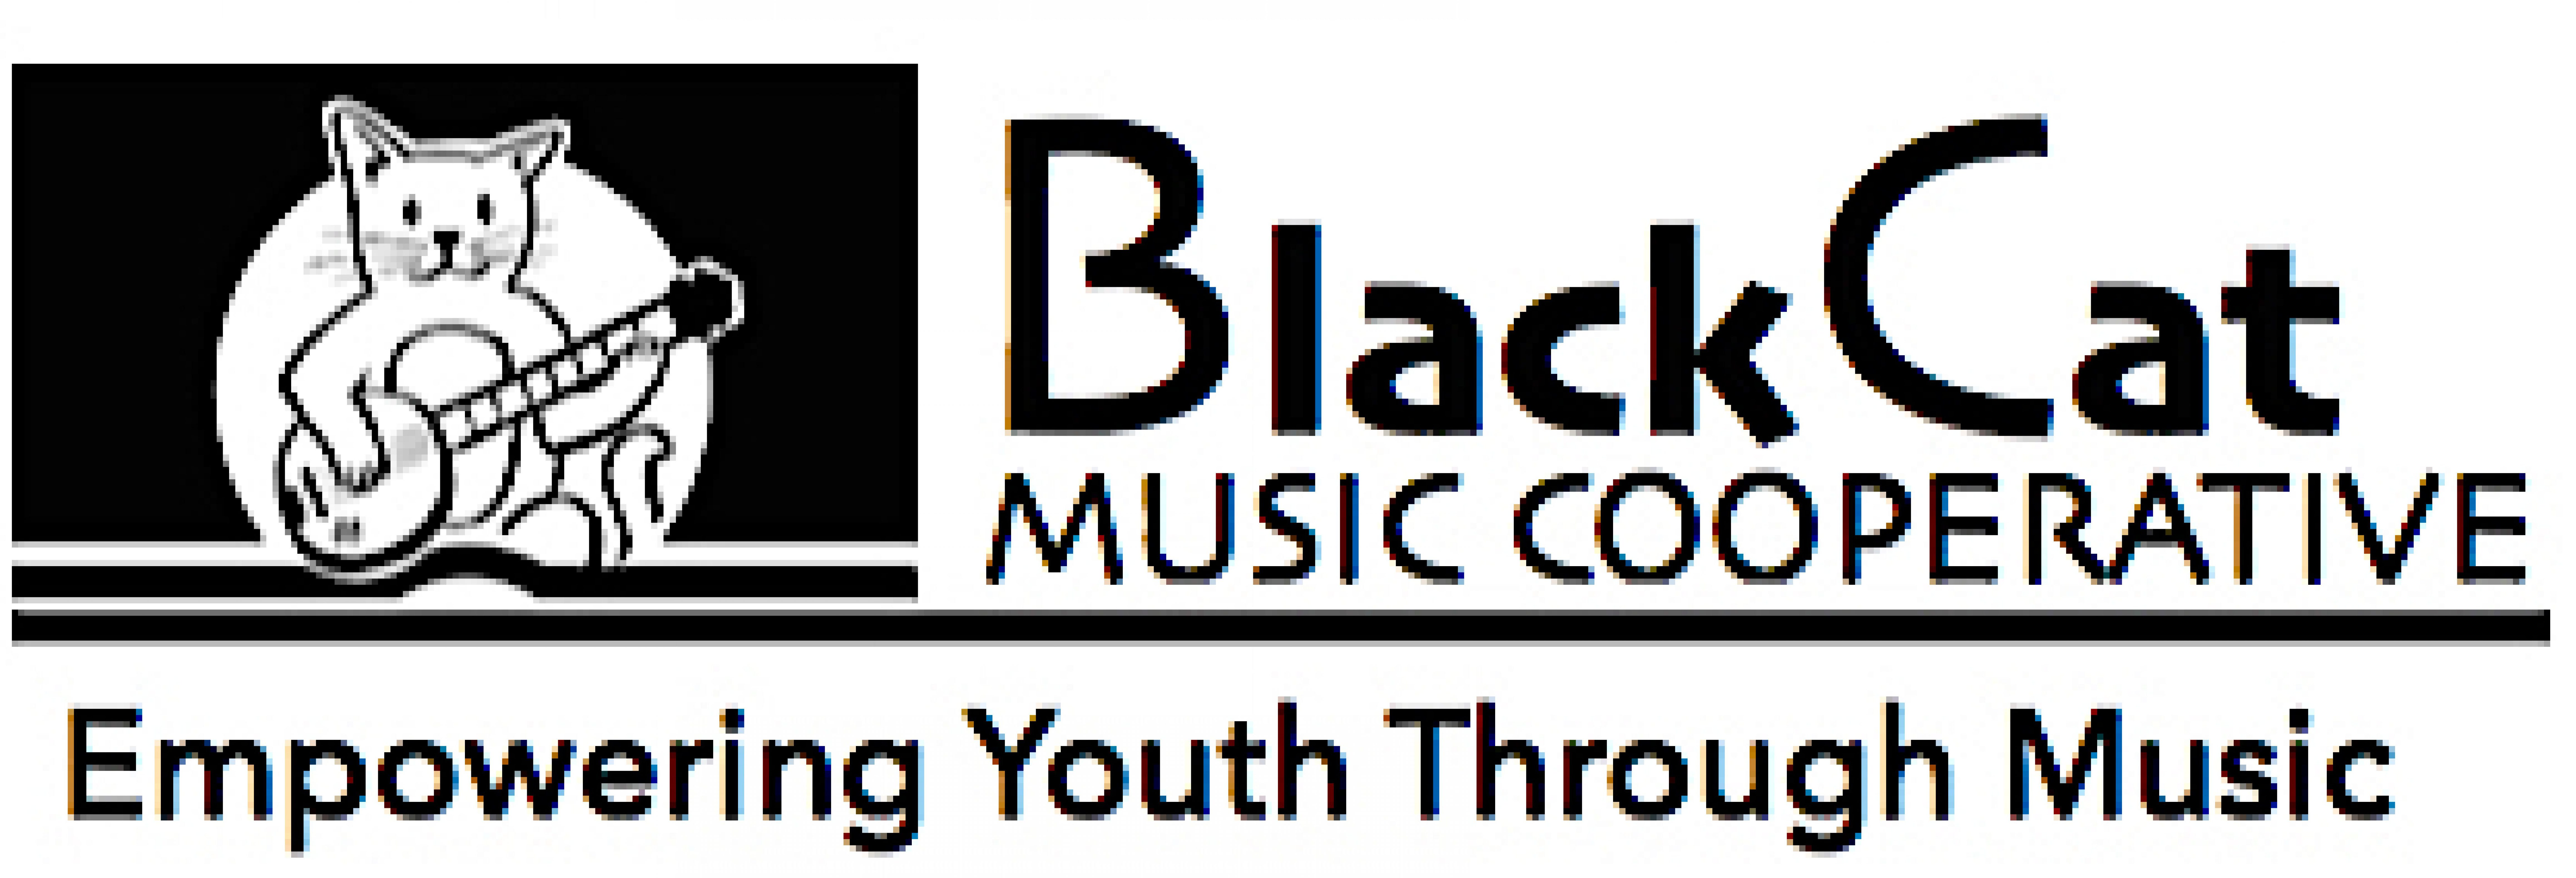 BlackCat Music Cooperative